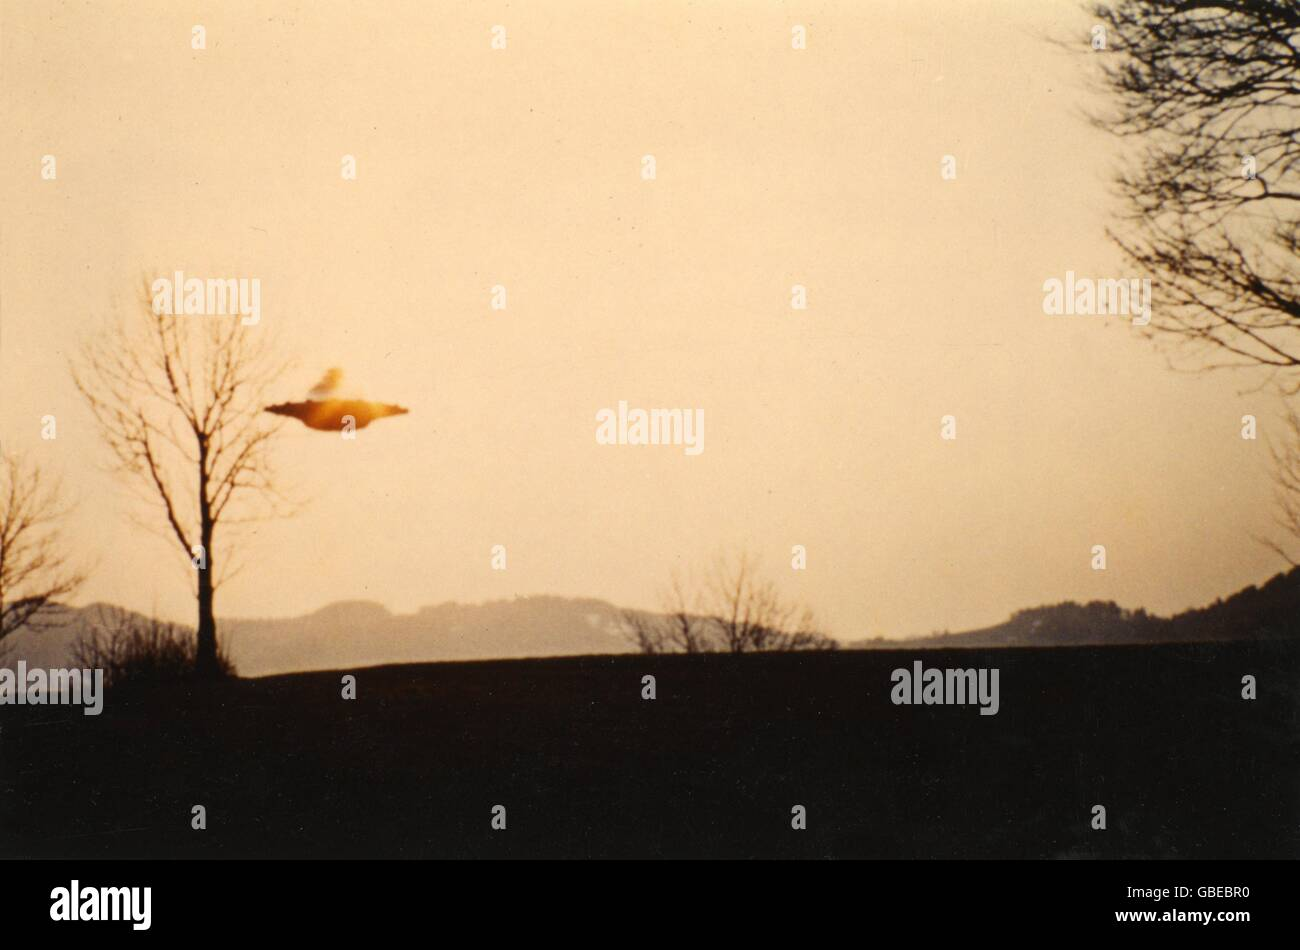 astronautics, unidentified flying object (UFO), ufos, show flight of Semja ship, Hasenböl-Langenberg, Ob Fischenthal, - Stock Image